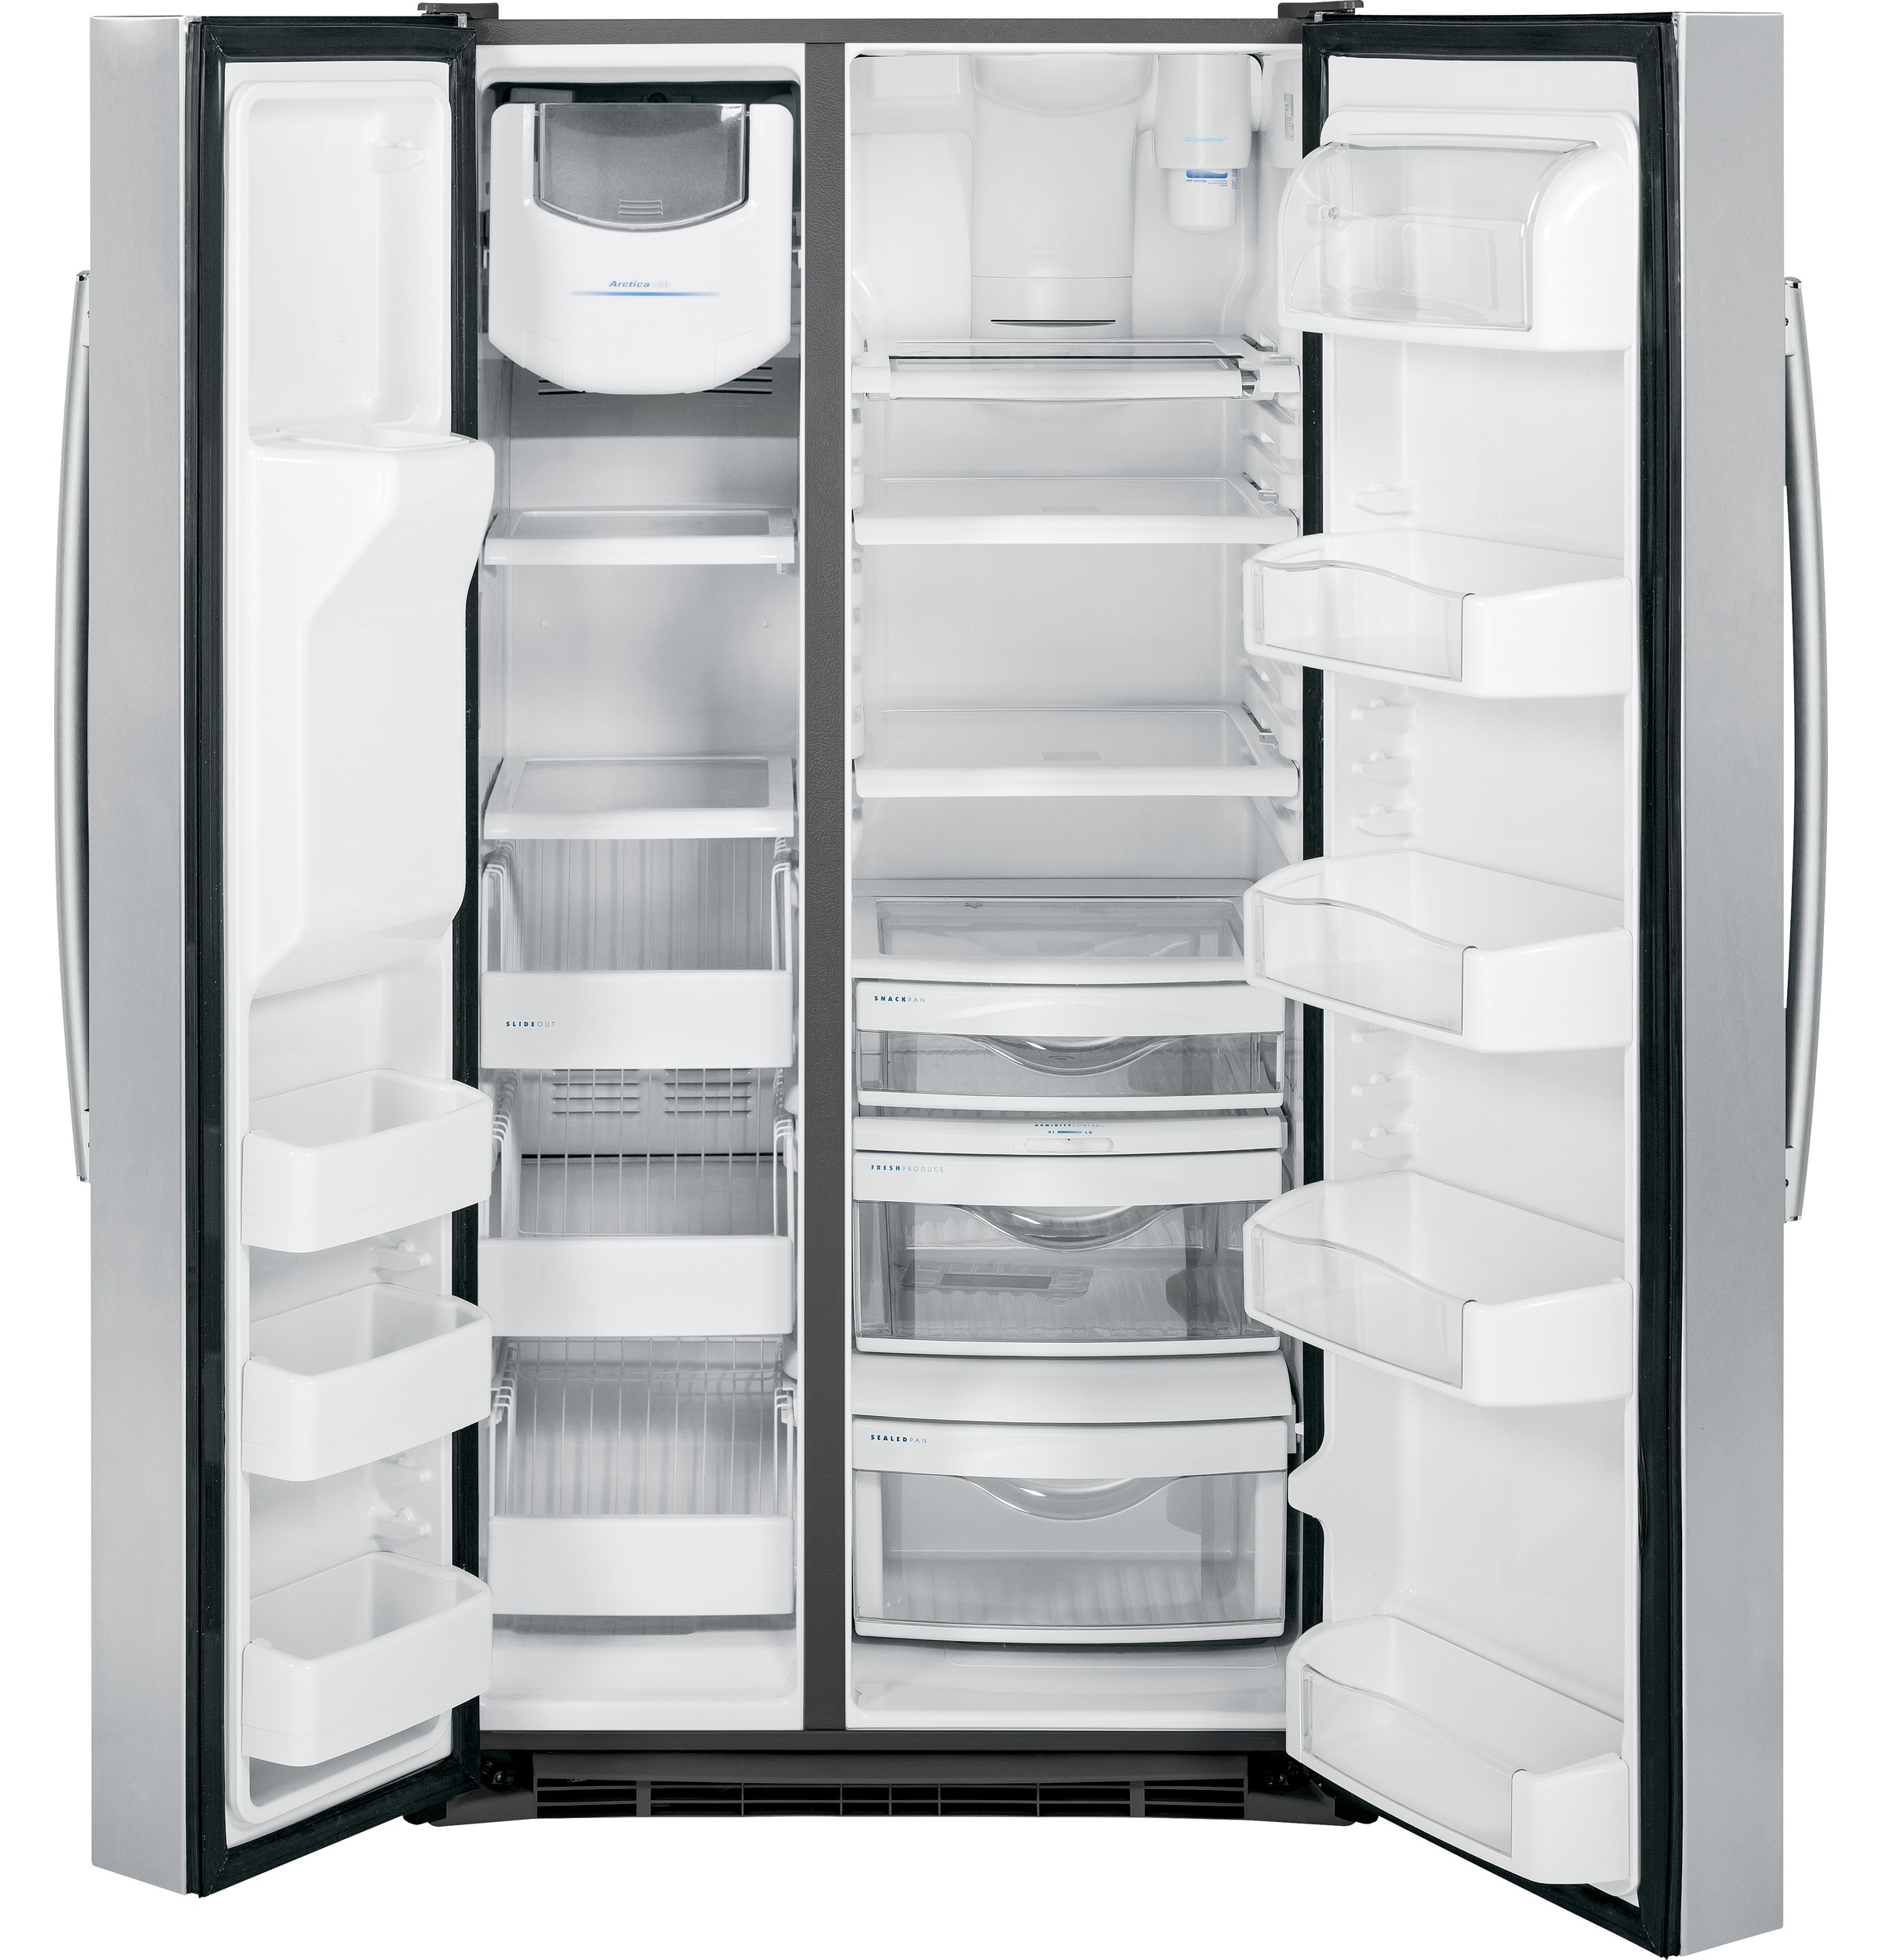 Ge 30 inch side by side white refrigerator - Product Image Product Image Product Image Product Image